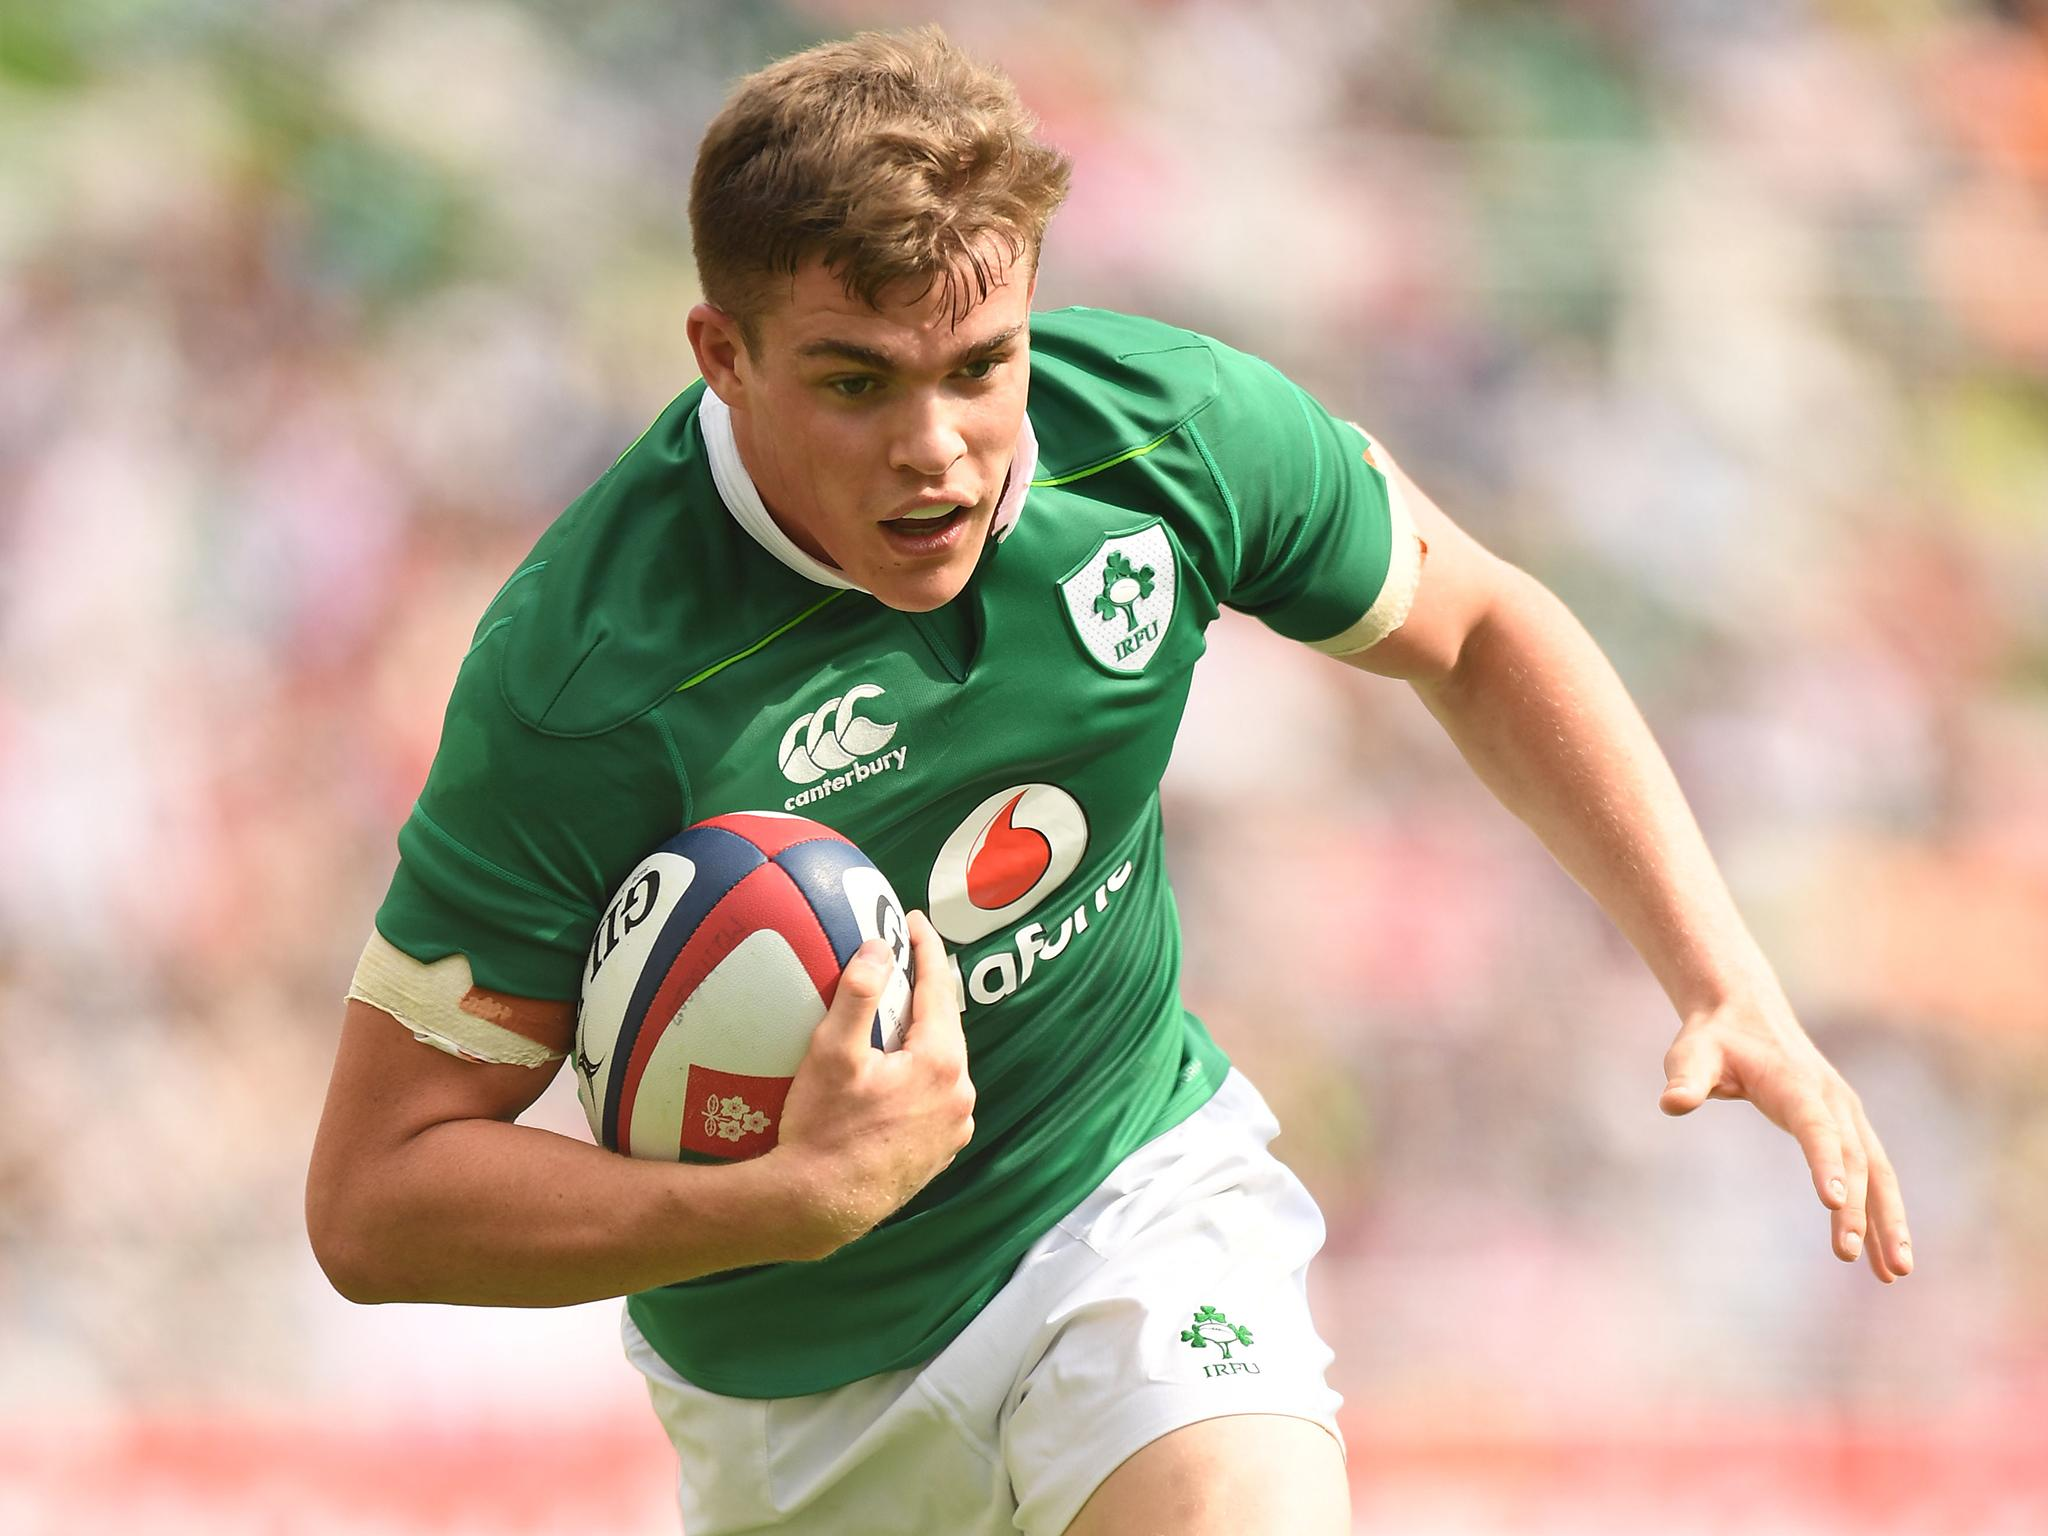 Six Nations 2018: Garry Ringrose returns to Ireland squad to ease concerns after Robbie Henshaw injury